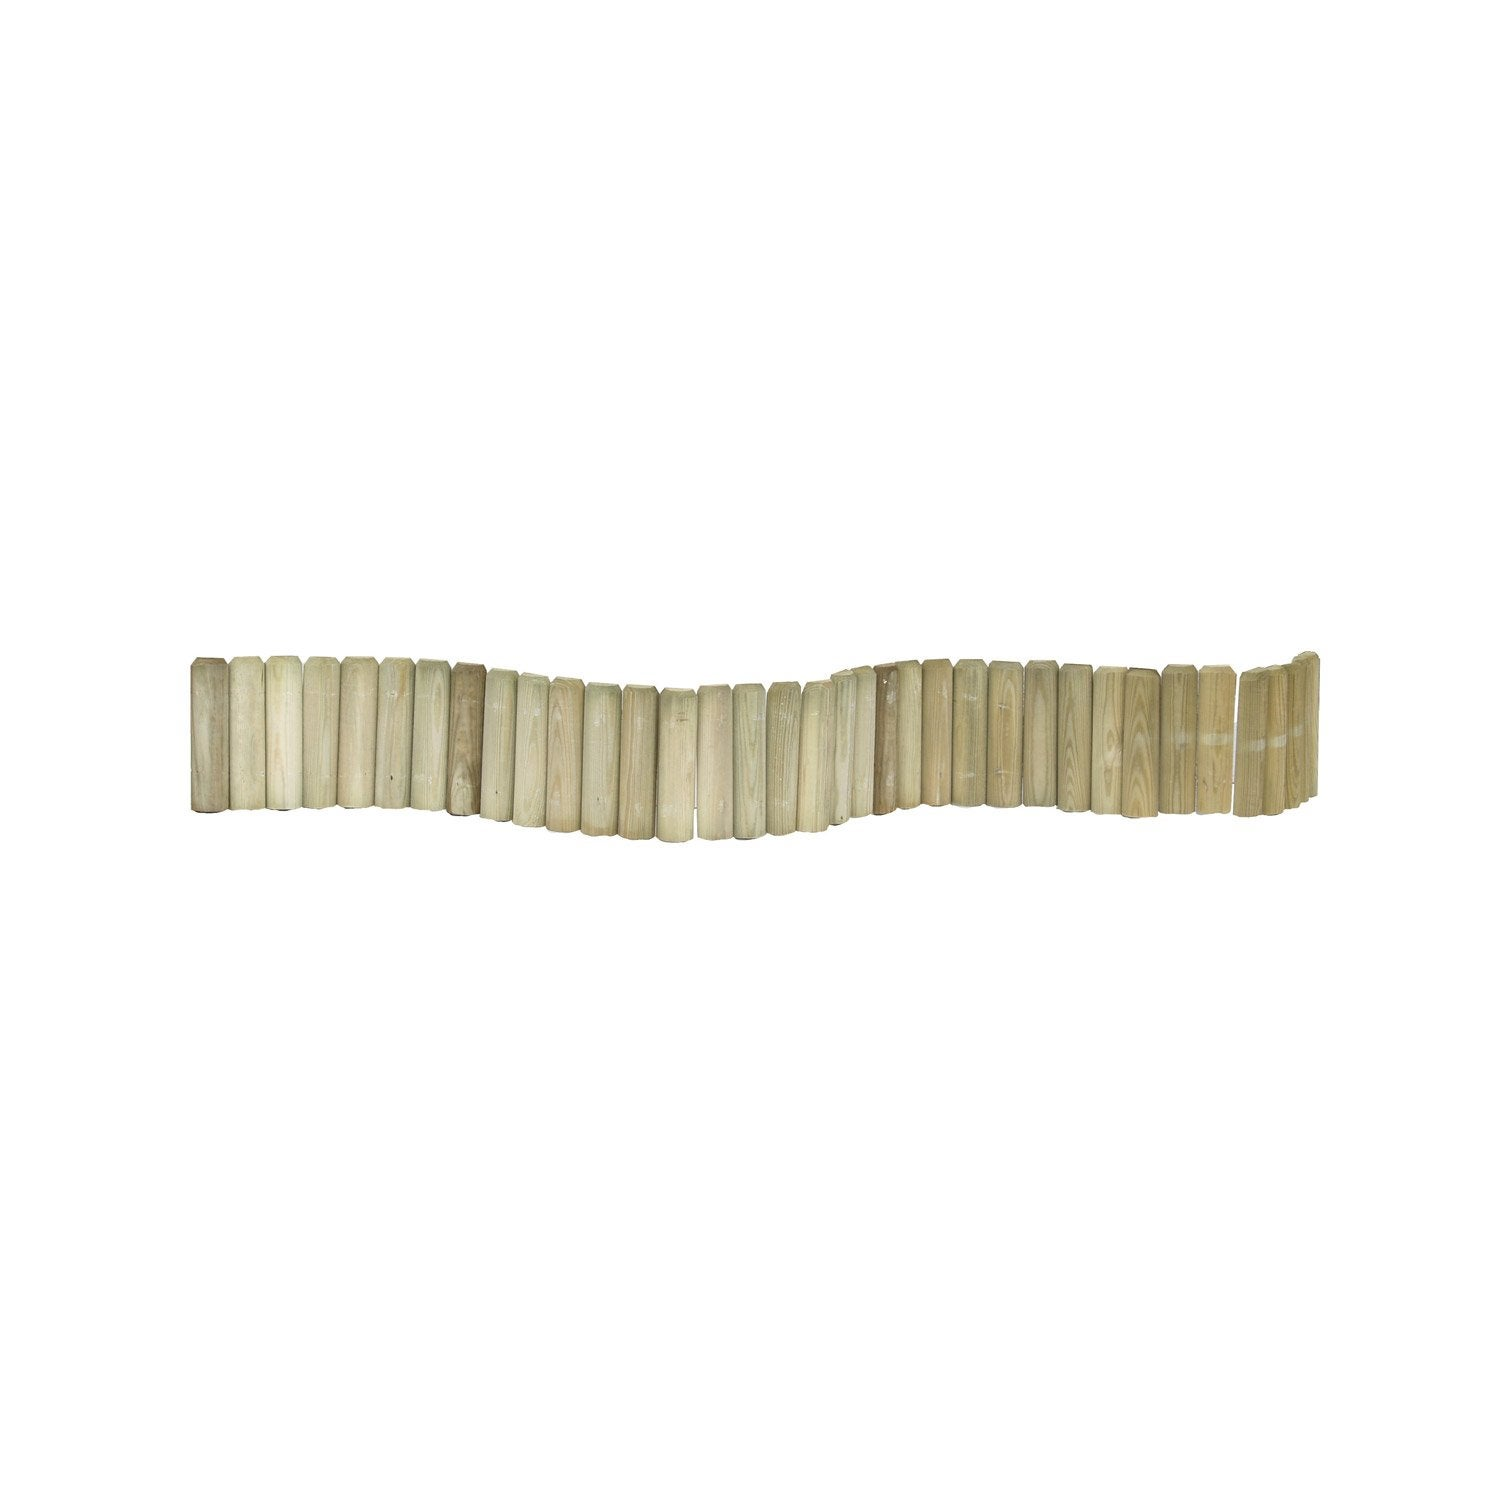 Bordure planter 1 2 rondin bois naturel x cm for Rondin de bois leroy merlin